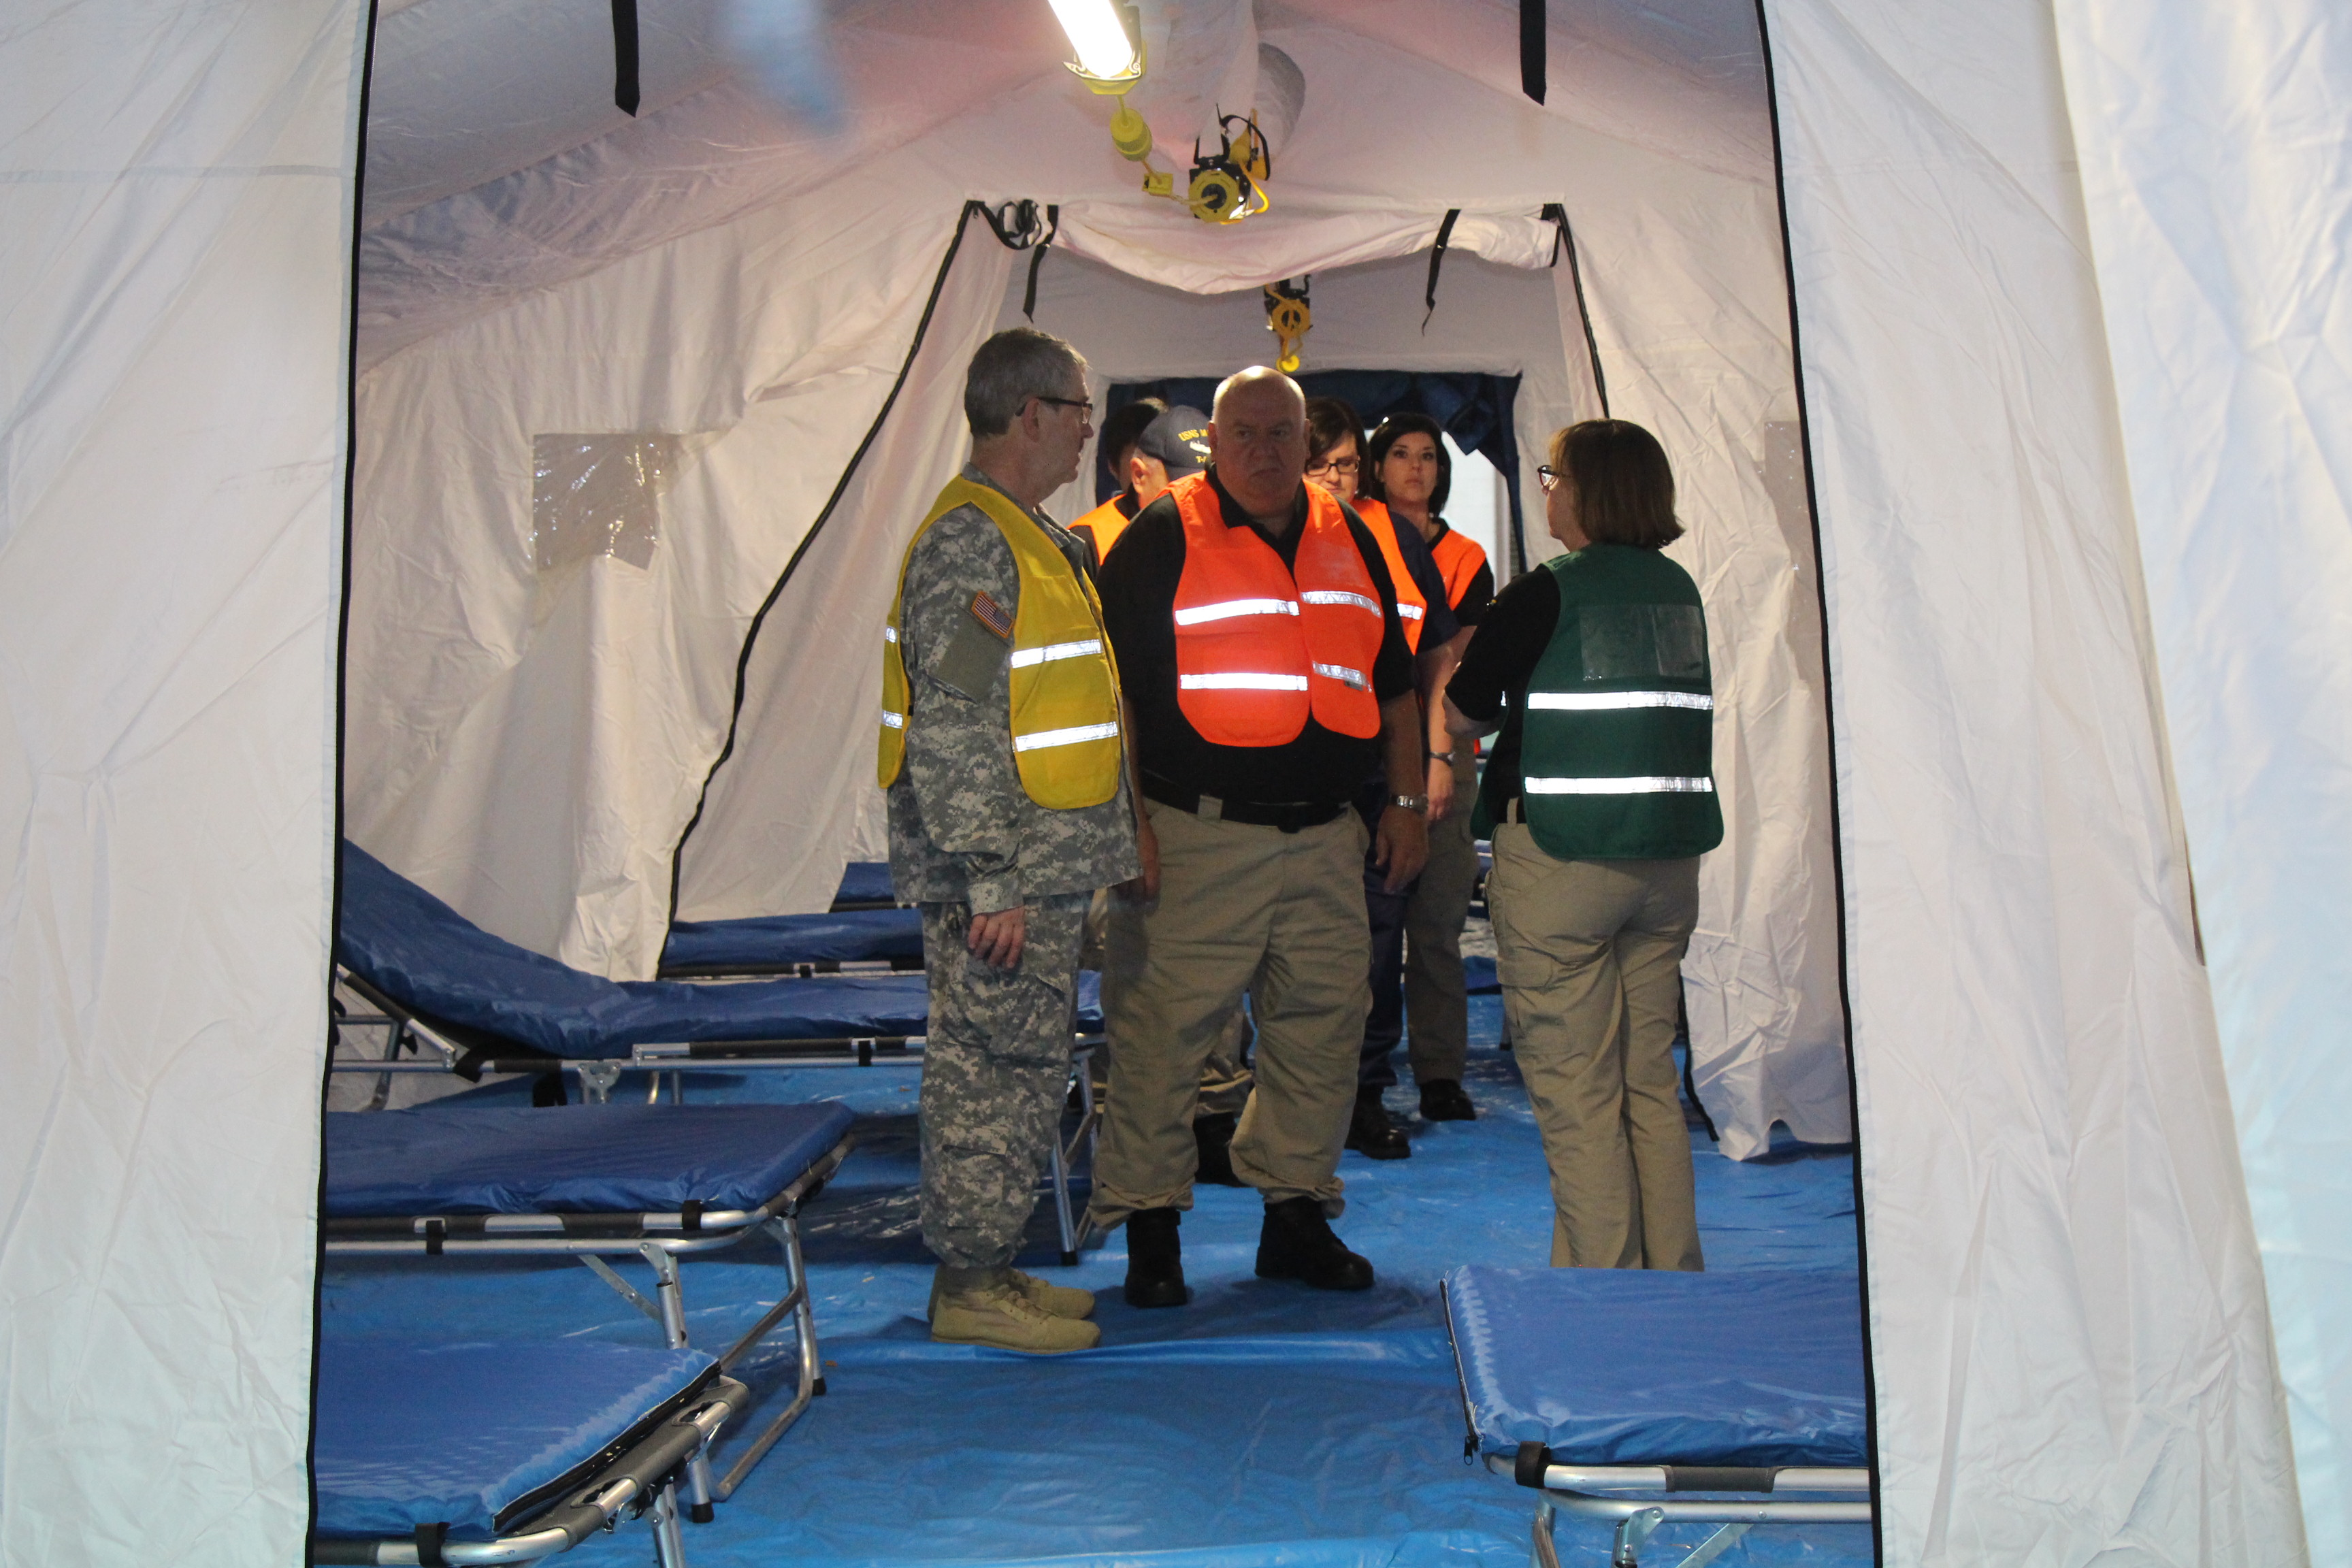 GA SDF Chief Surgeon Lt. Col. Michael Greene (left) and Medial Reserve Corps Director Col. John S. Harvey (center) are inspecting the Mobile Surge Hospital on March 29, 2017, as it was set up at Air Dominance Center in Savannah, GA, and prepared for the disaster casualties (role players) arrival during the Vigilant Guard 2017 exercise. Vigilant Guard 2017 Georgia is a multi-state multi-agency training exercise, sponsored by U.S. Northern Command, in collaboration with the National Guard Bureau.  Georgia State Defense Force photo by Capt. Vadim Timchenko.